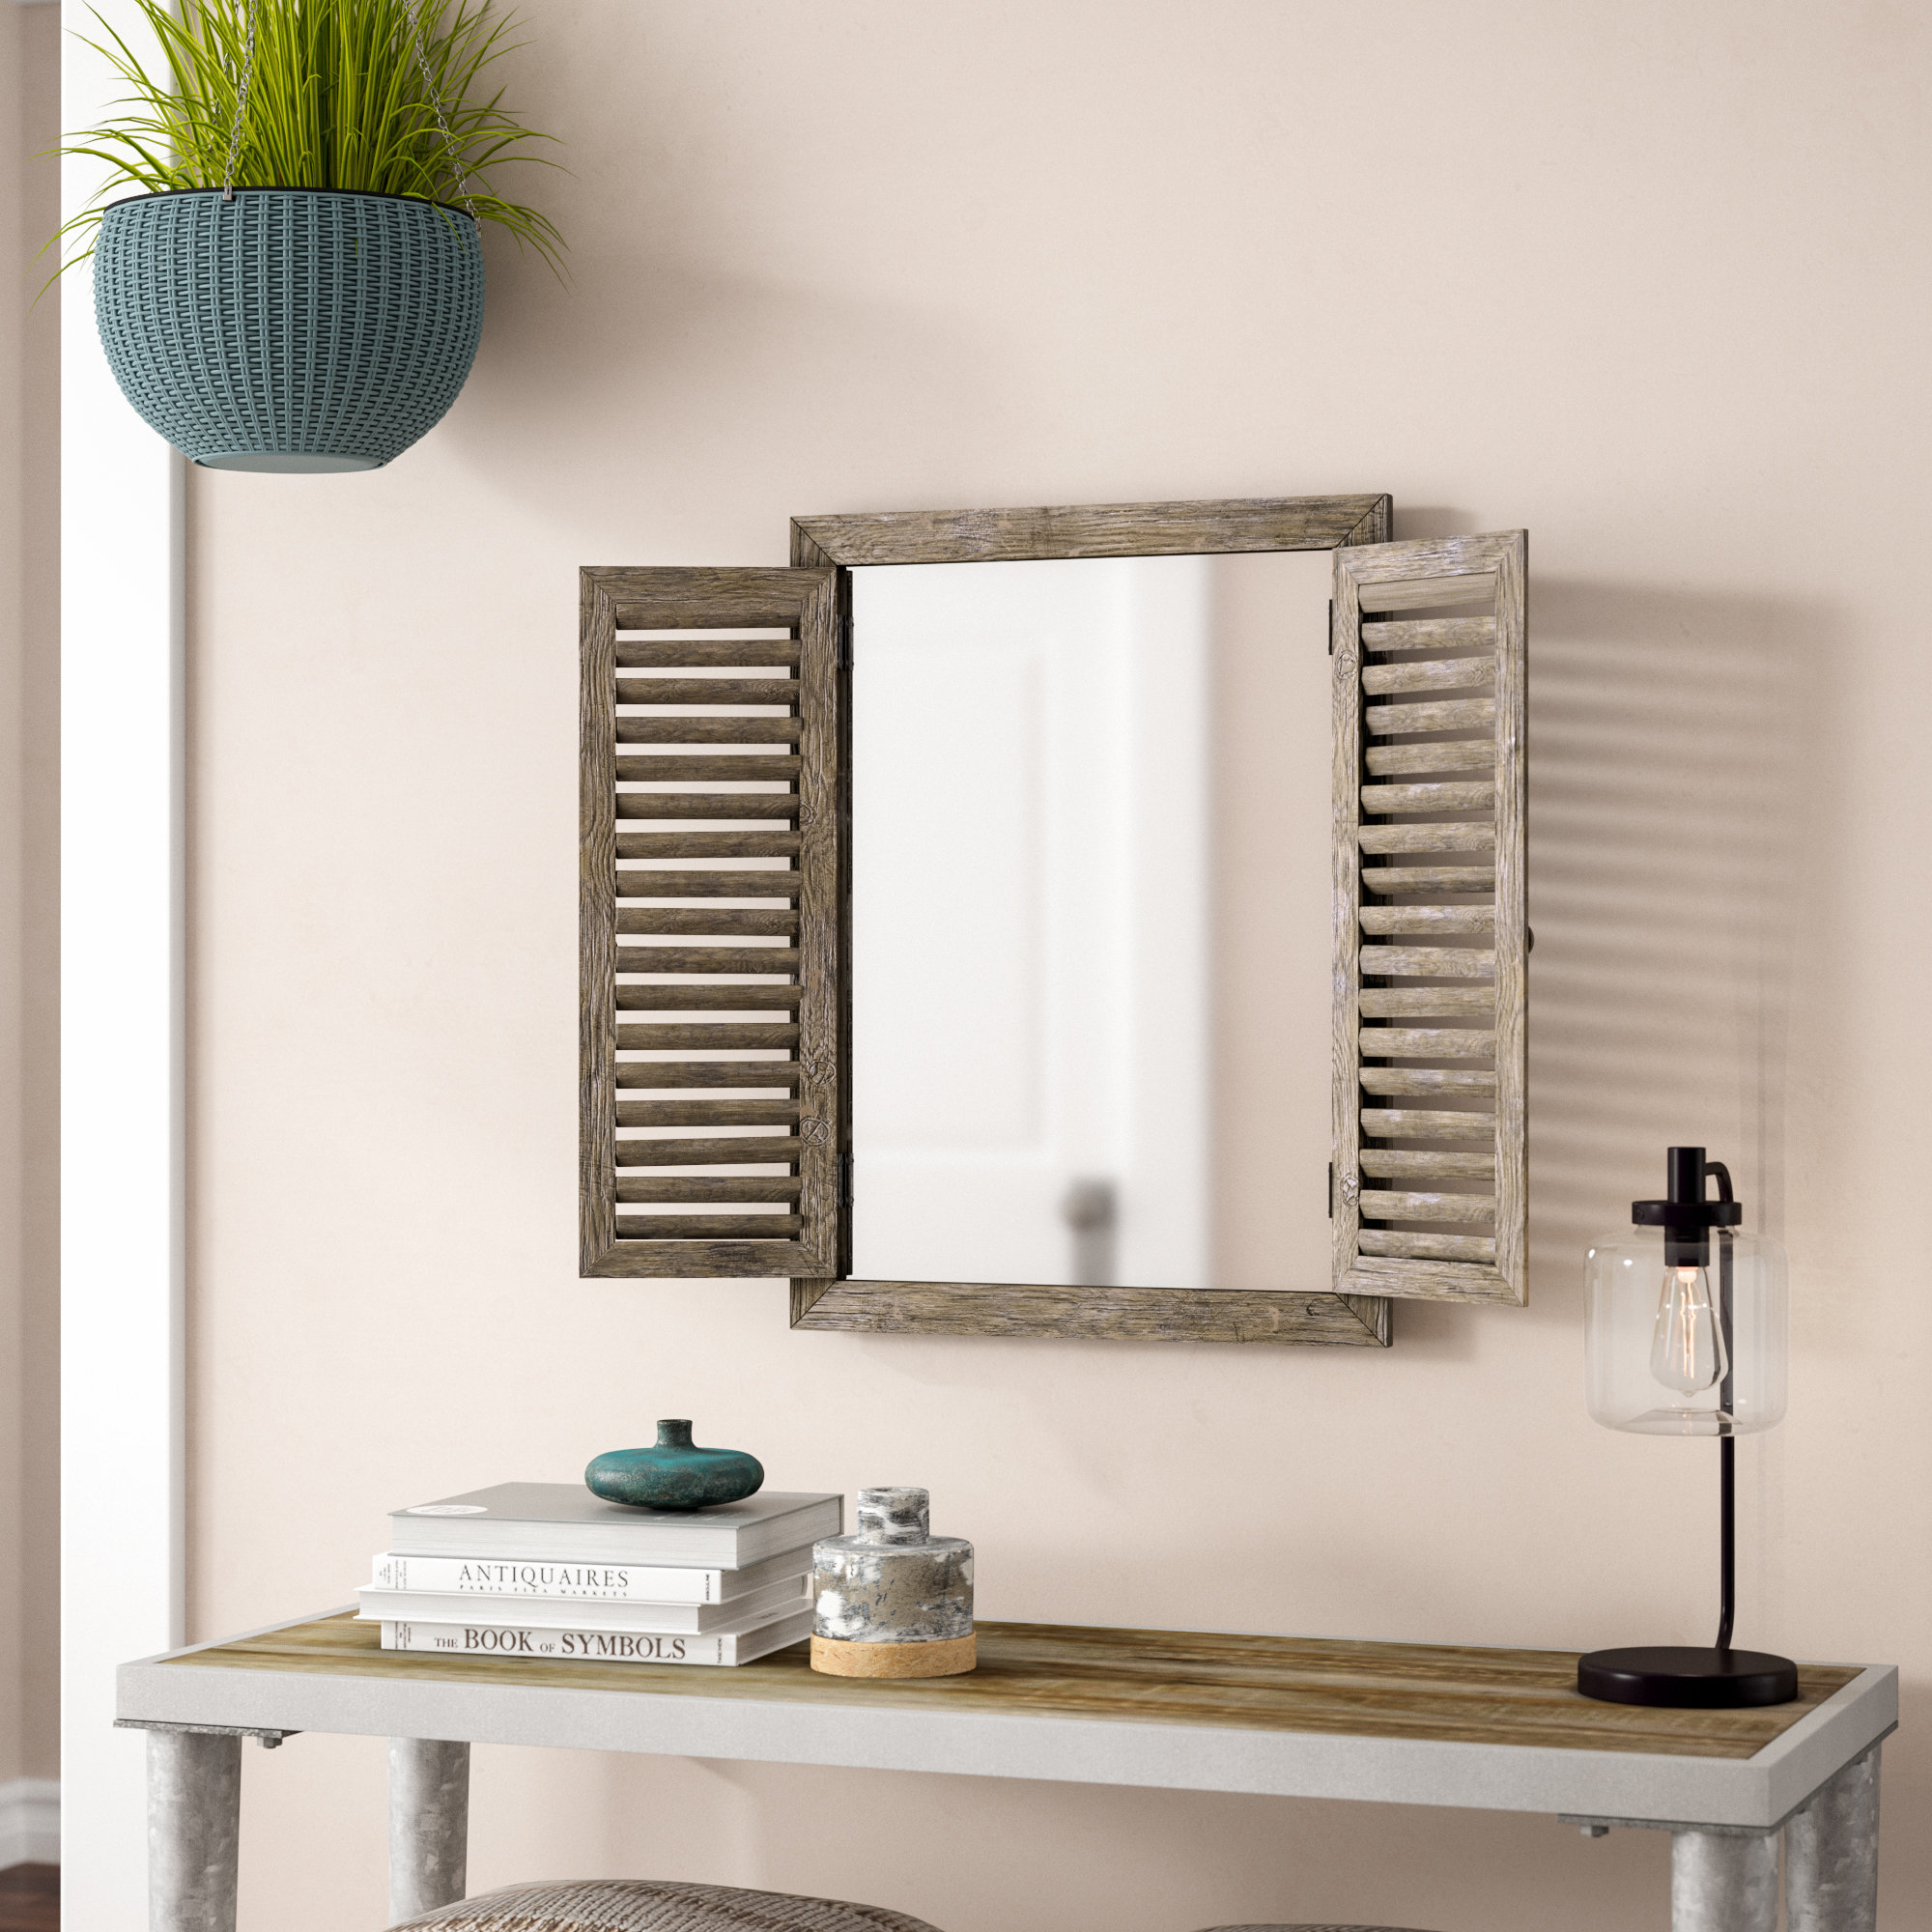 Cottage & Country Wall Mirrors You'll Love In 2019 | Wayfair.ca for Peetz Modern Rustic Accent Mirrors (Image 7 of 30)